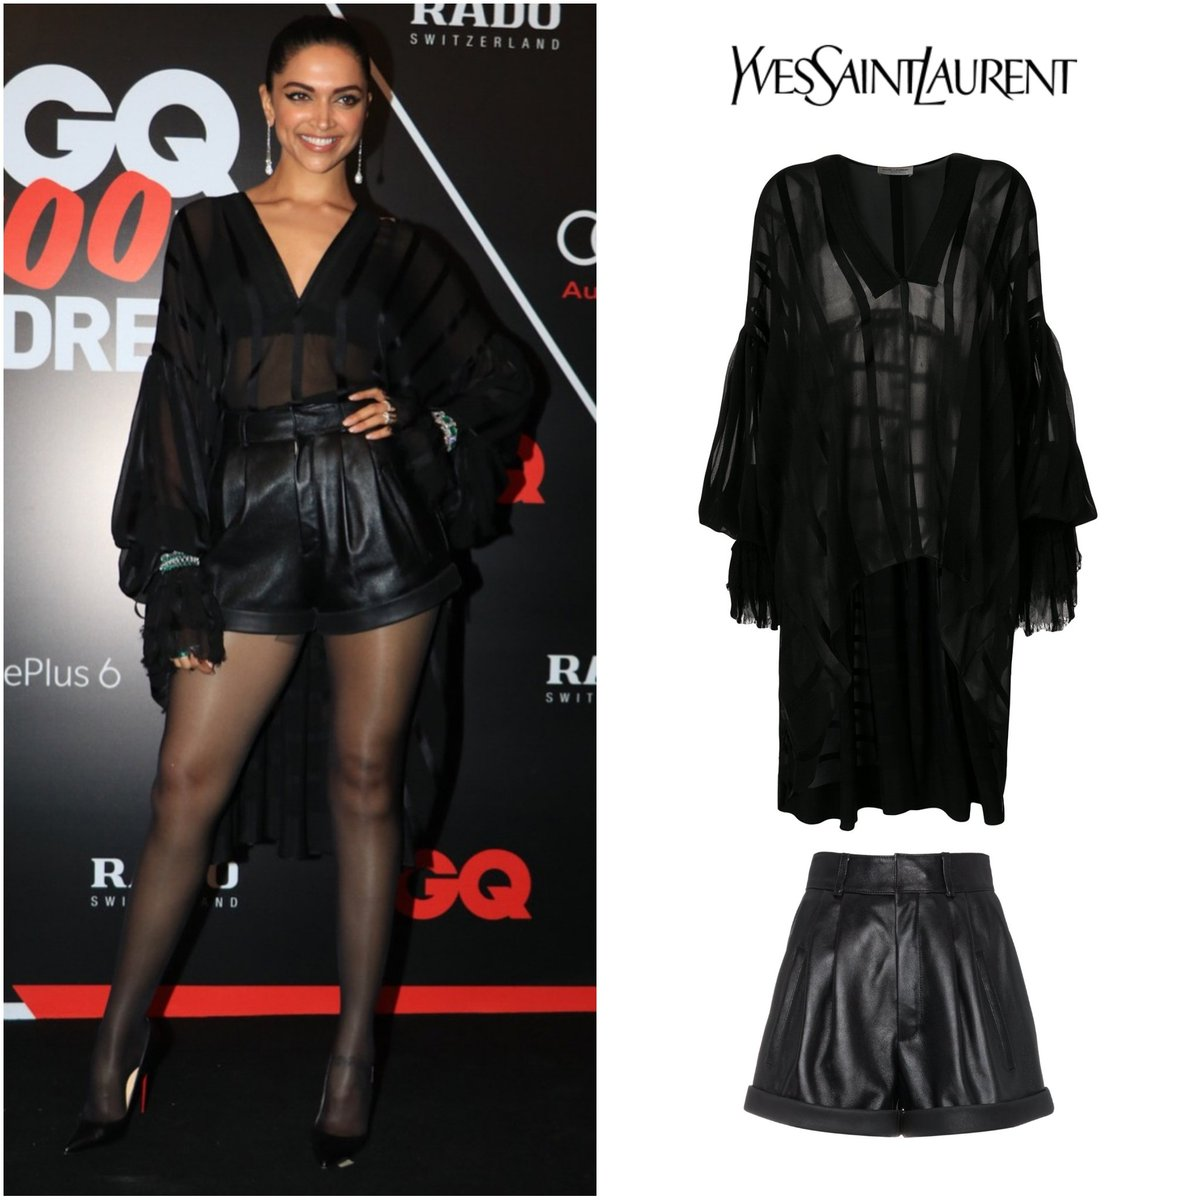 Deepika-Padukone-in-Balmain-and-Saint-Laurent